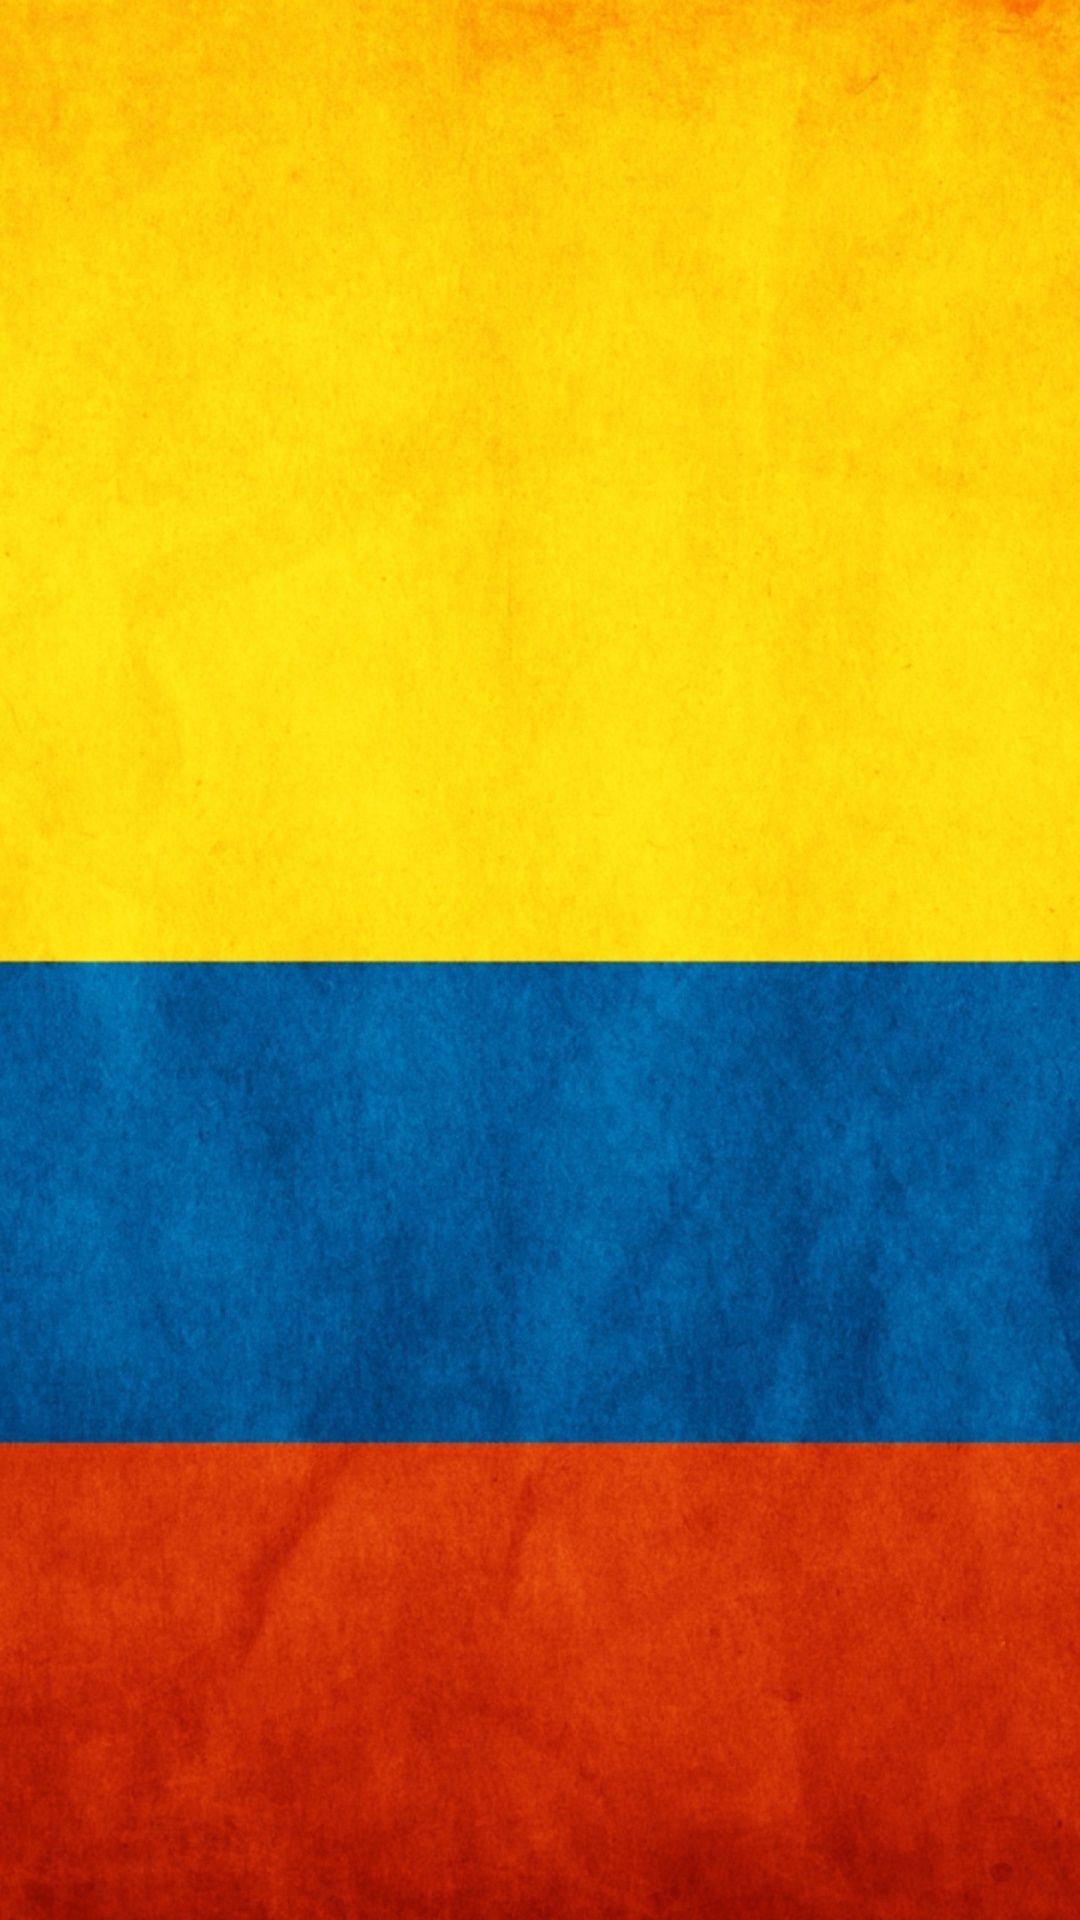 1080x1920 Colombian flag iphone 6 hd photos   iPhone Wallpapers